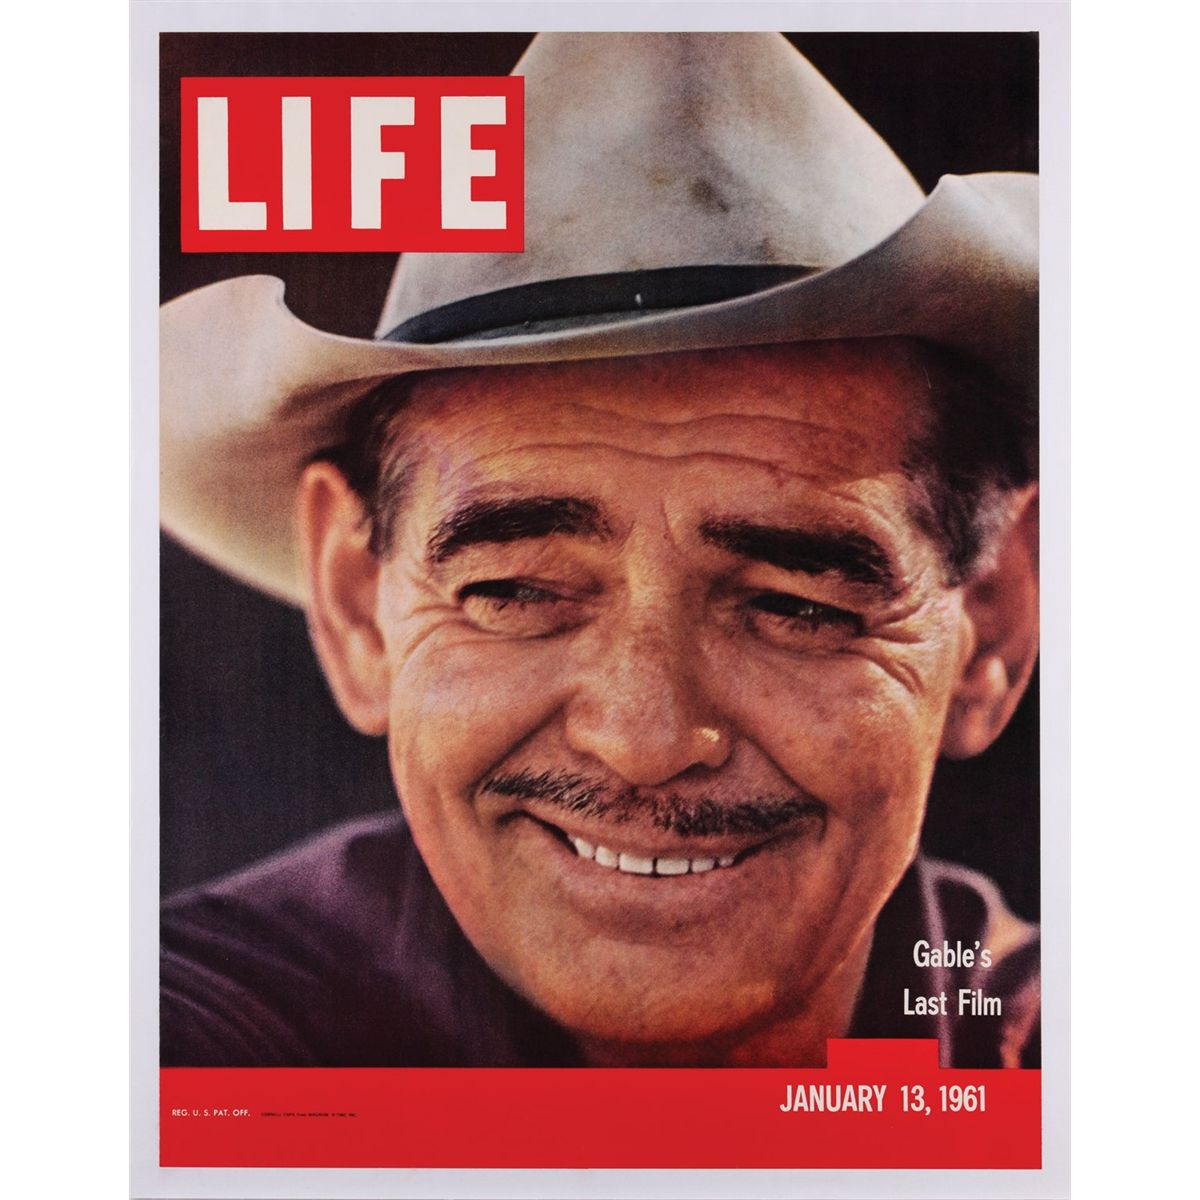 an introduction to the life and history of clark gable Clark gable posters at allposterscom choose from over 50,000 posters and art prints history literature maps life-long passions and of-the-moment obsessions.